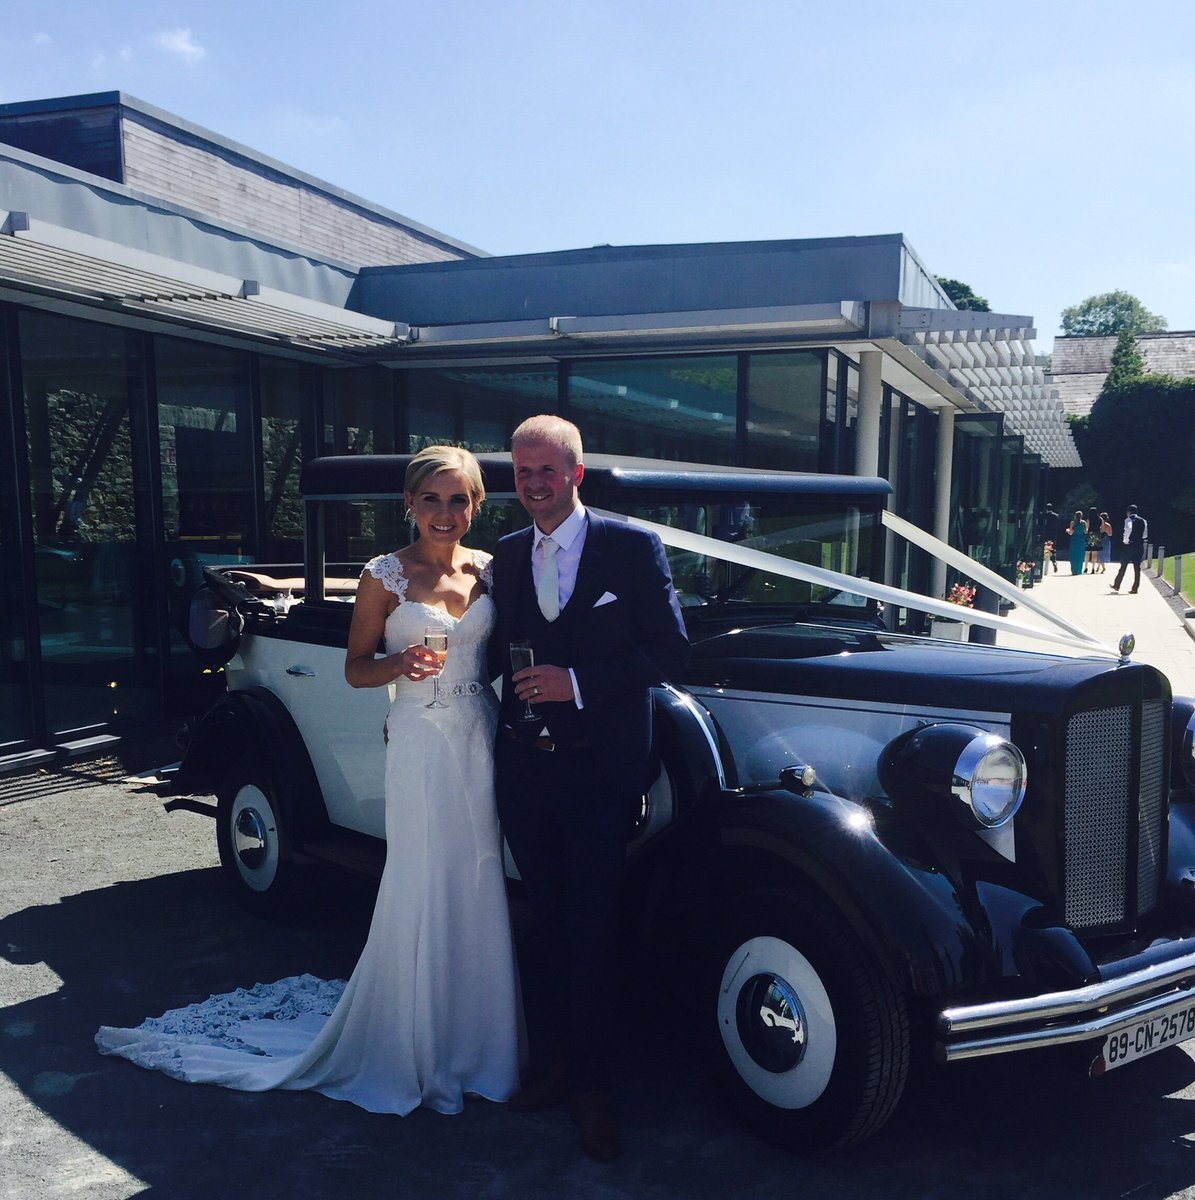 farnham estate on twitter happy 1 week anniversary to mr mrs king who got married here last friday 3rd of june wedding sunshine